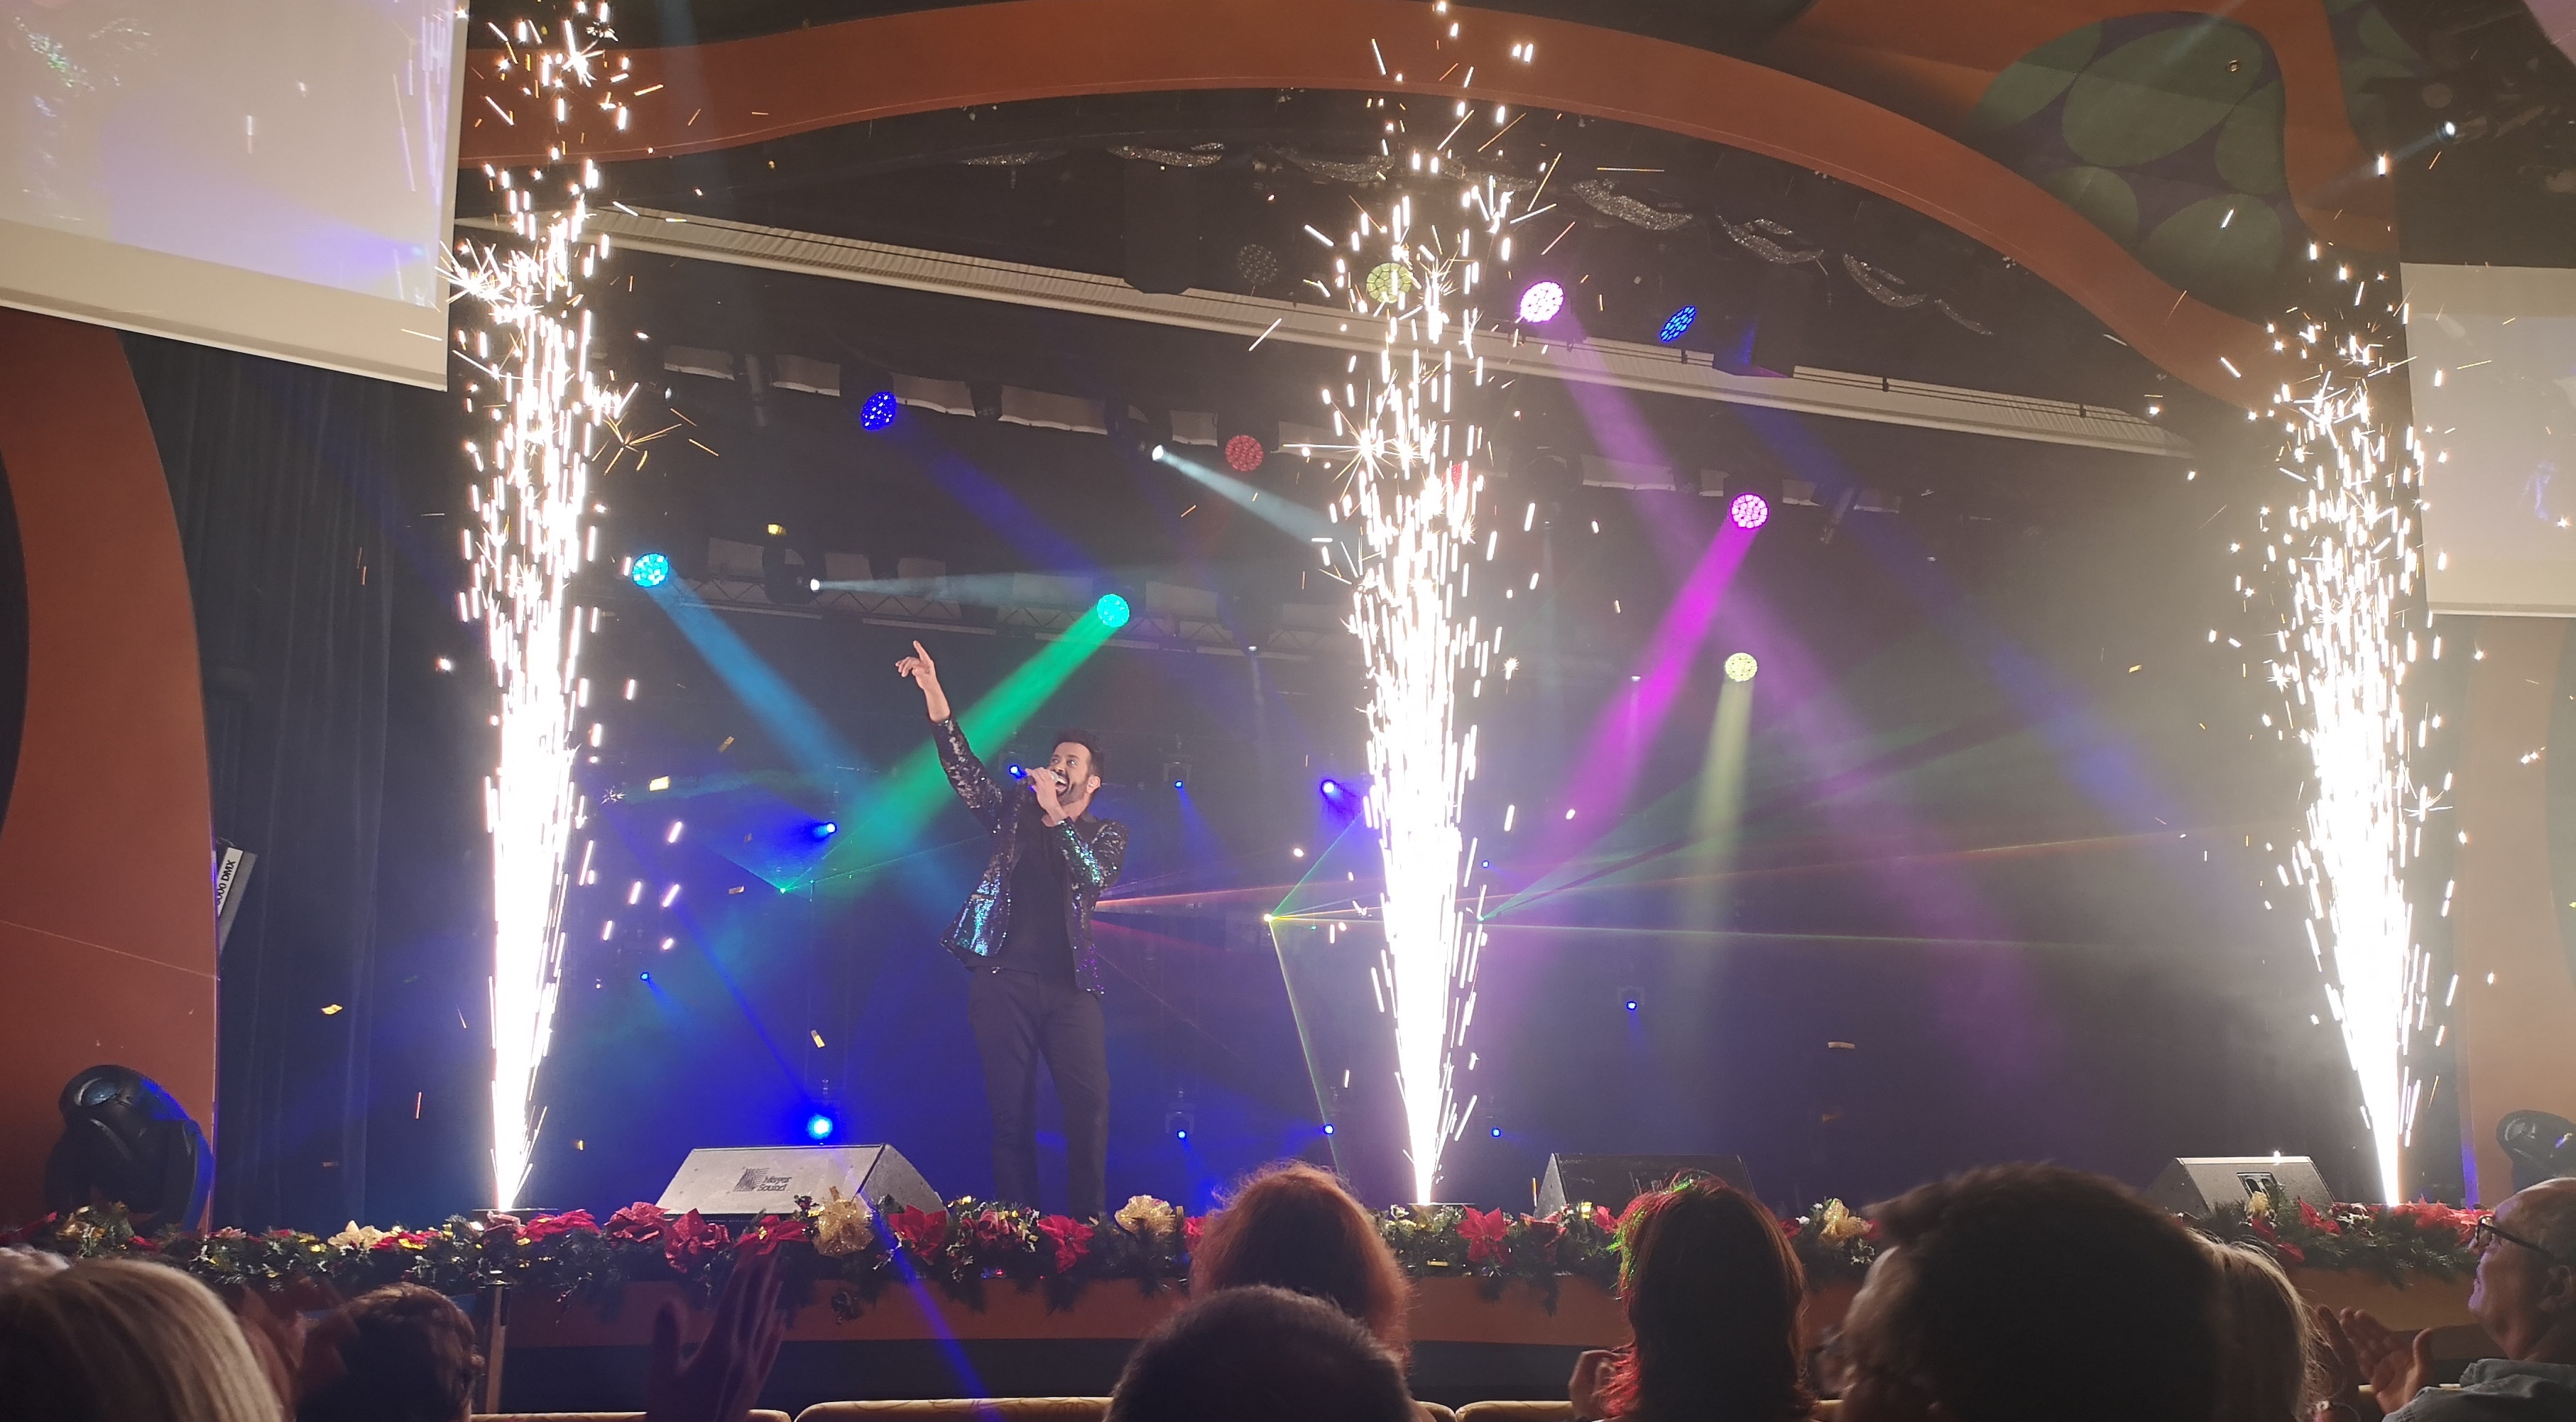 Costa Cruises Entertainment Fire Singing Stage Lights